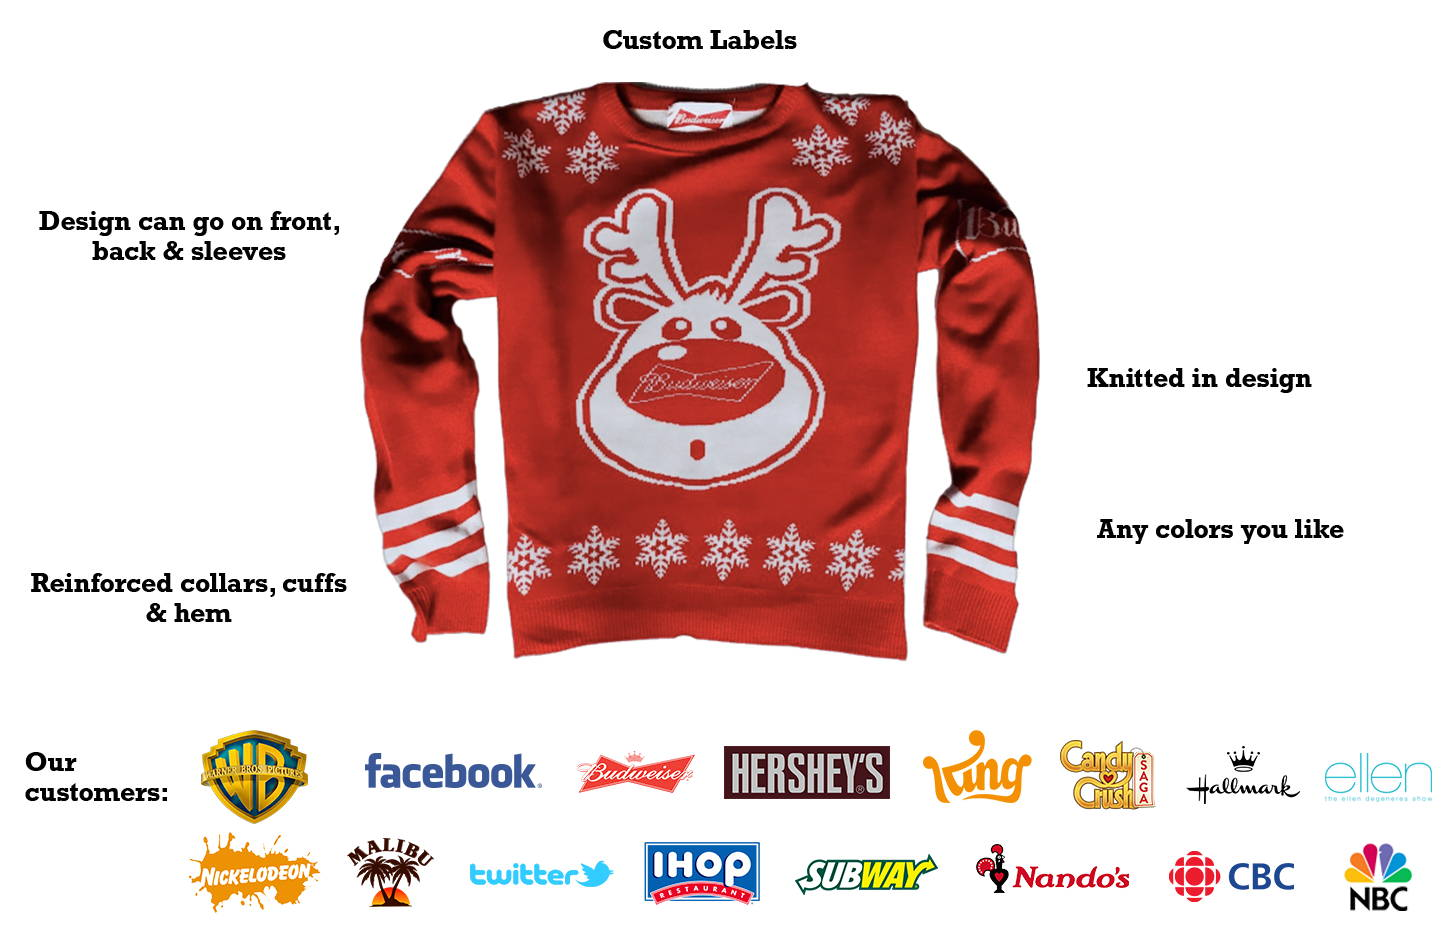 Image of Custom Christmas Jumper for Budweiser